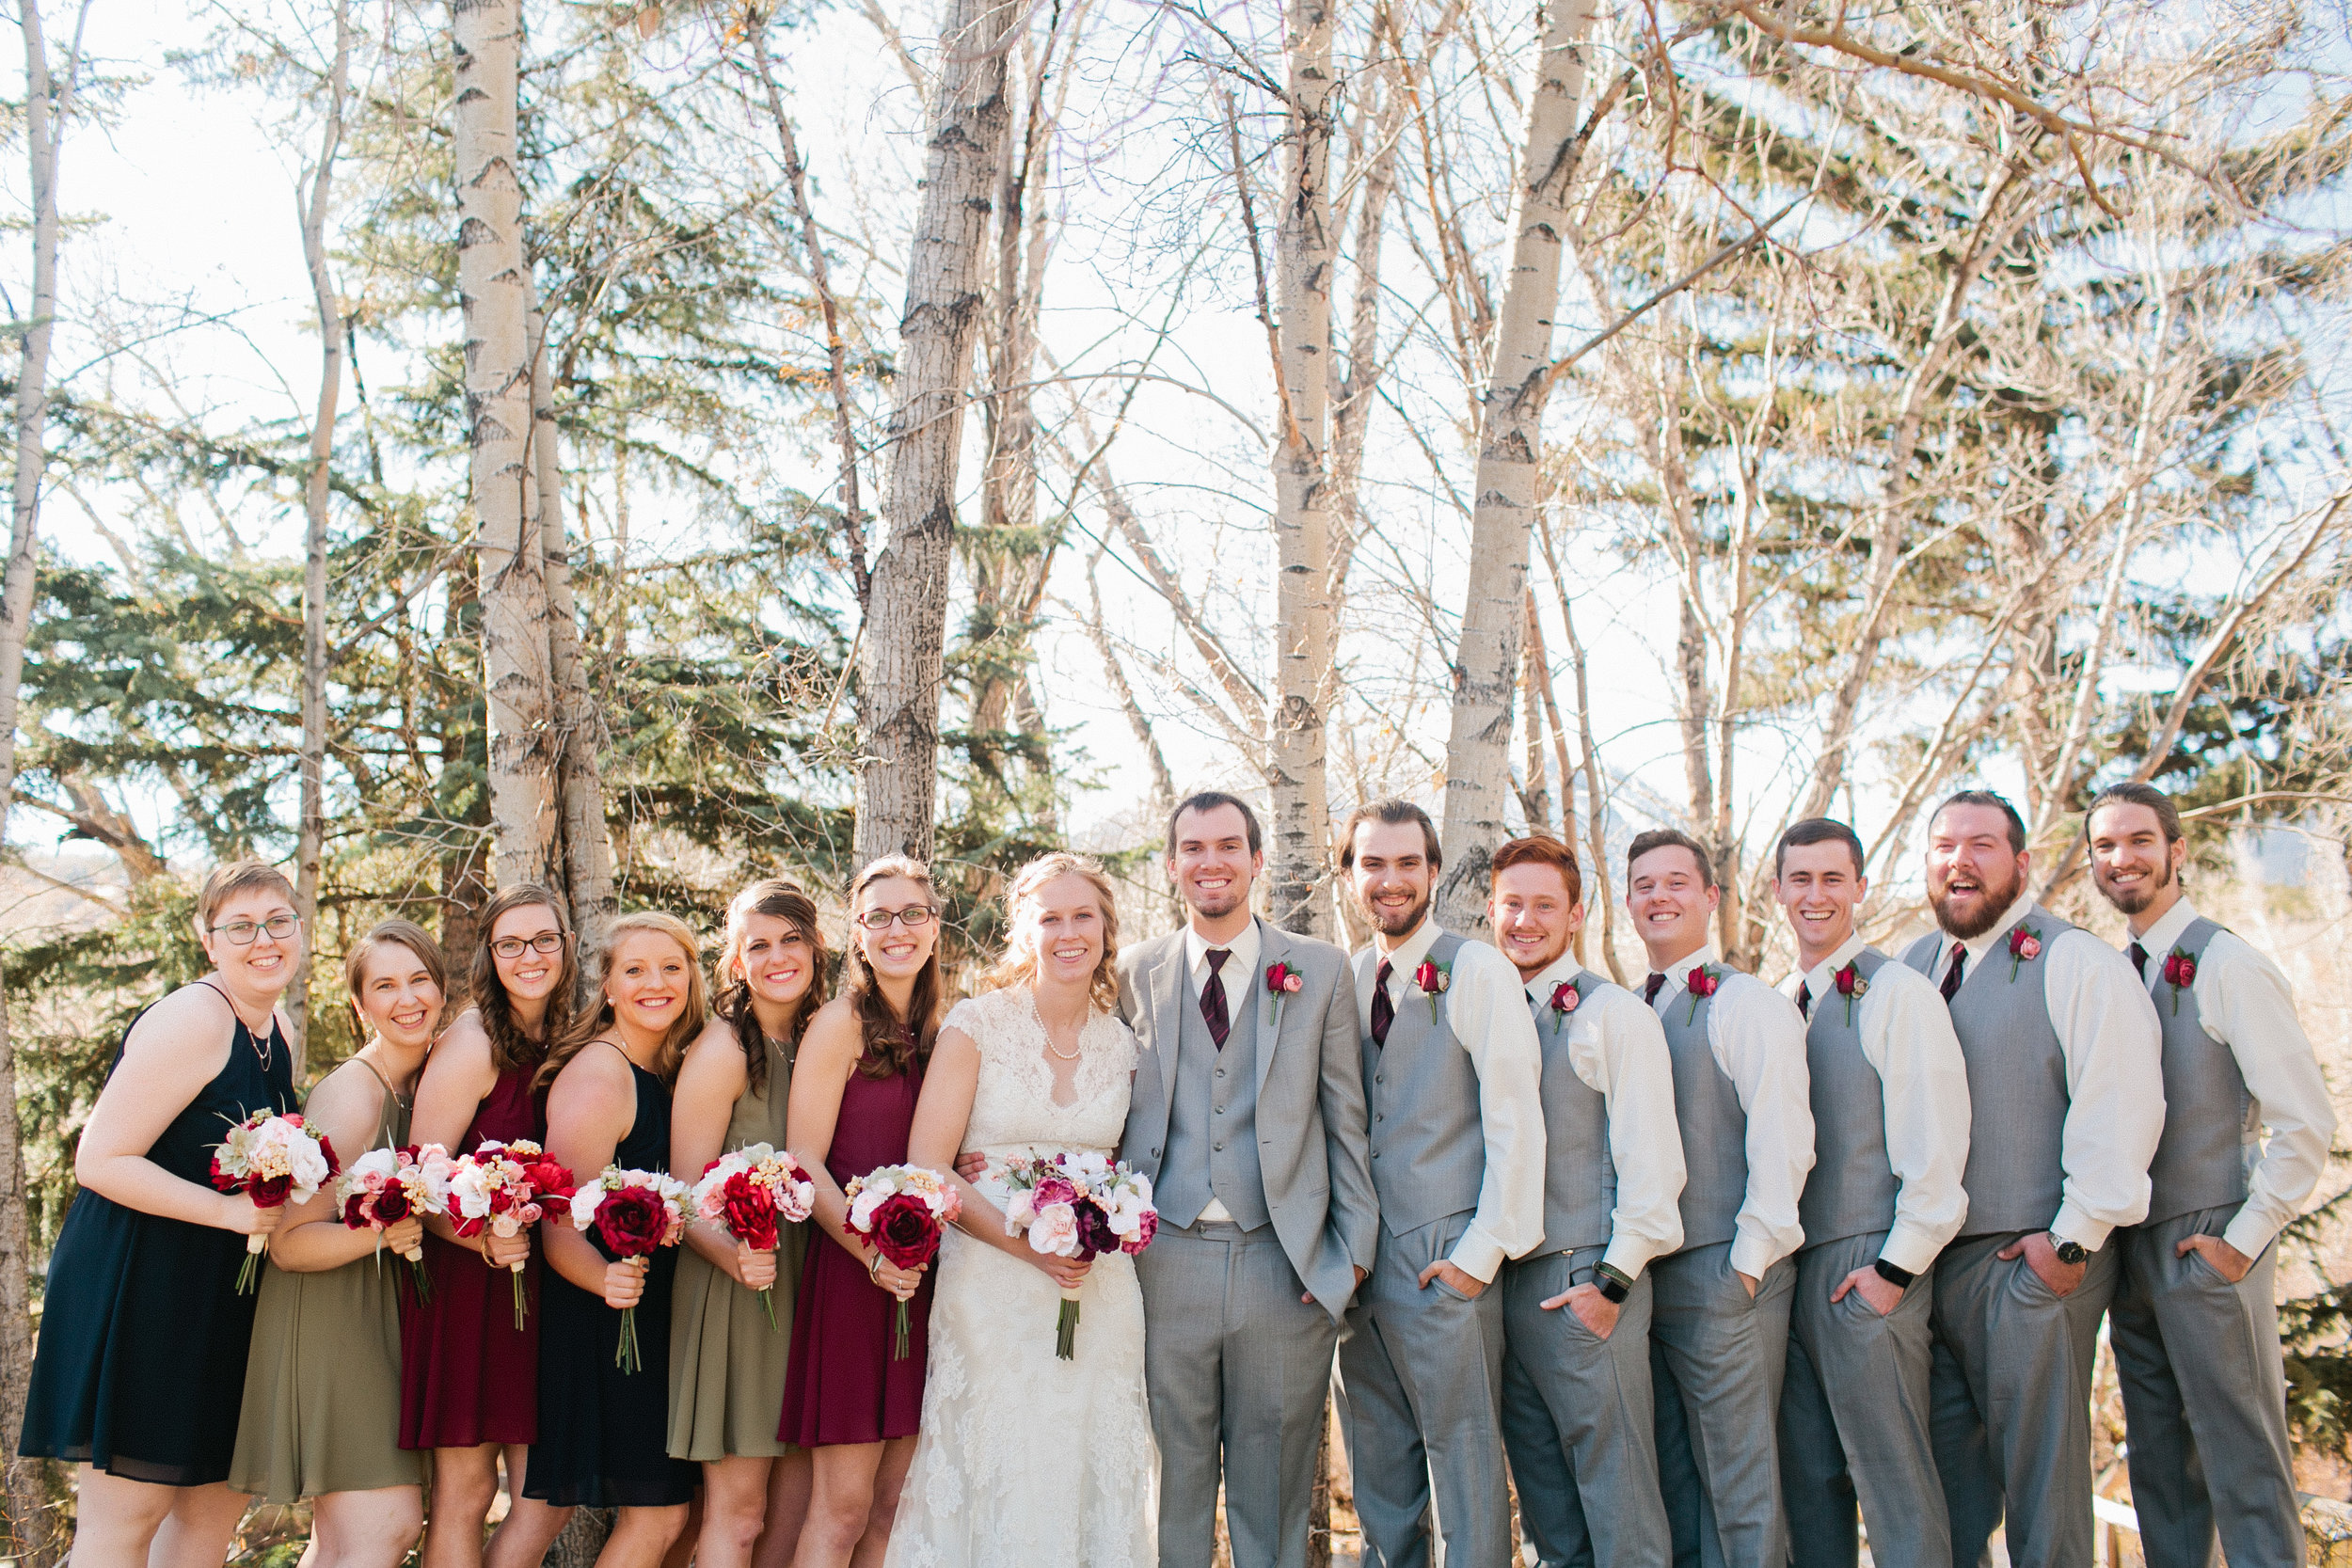 Silverthorne wedding venues and photographers